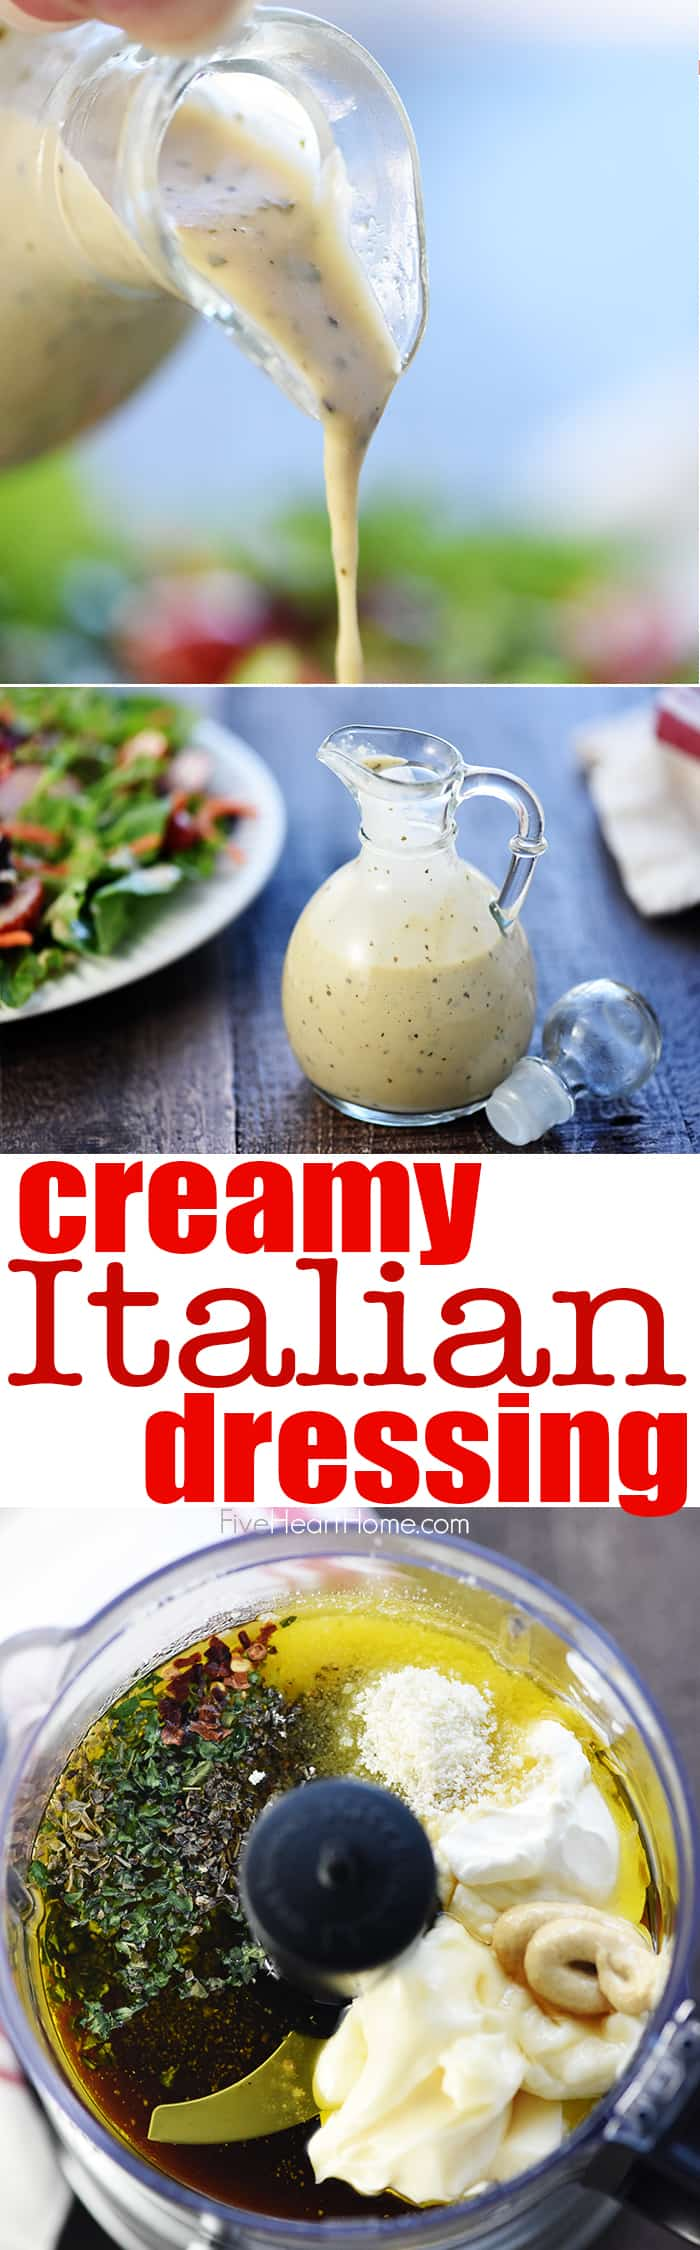 Homemade Creamy Italian Dressing ~ zesty, flavorful, and easy to make...a delicious topping for a crisp green salad or your favorite pasta salad! | FiveHeartHome.com